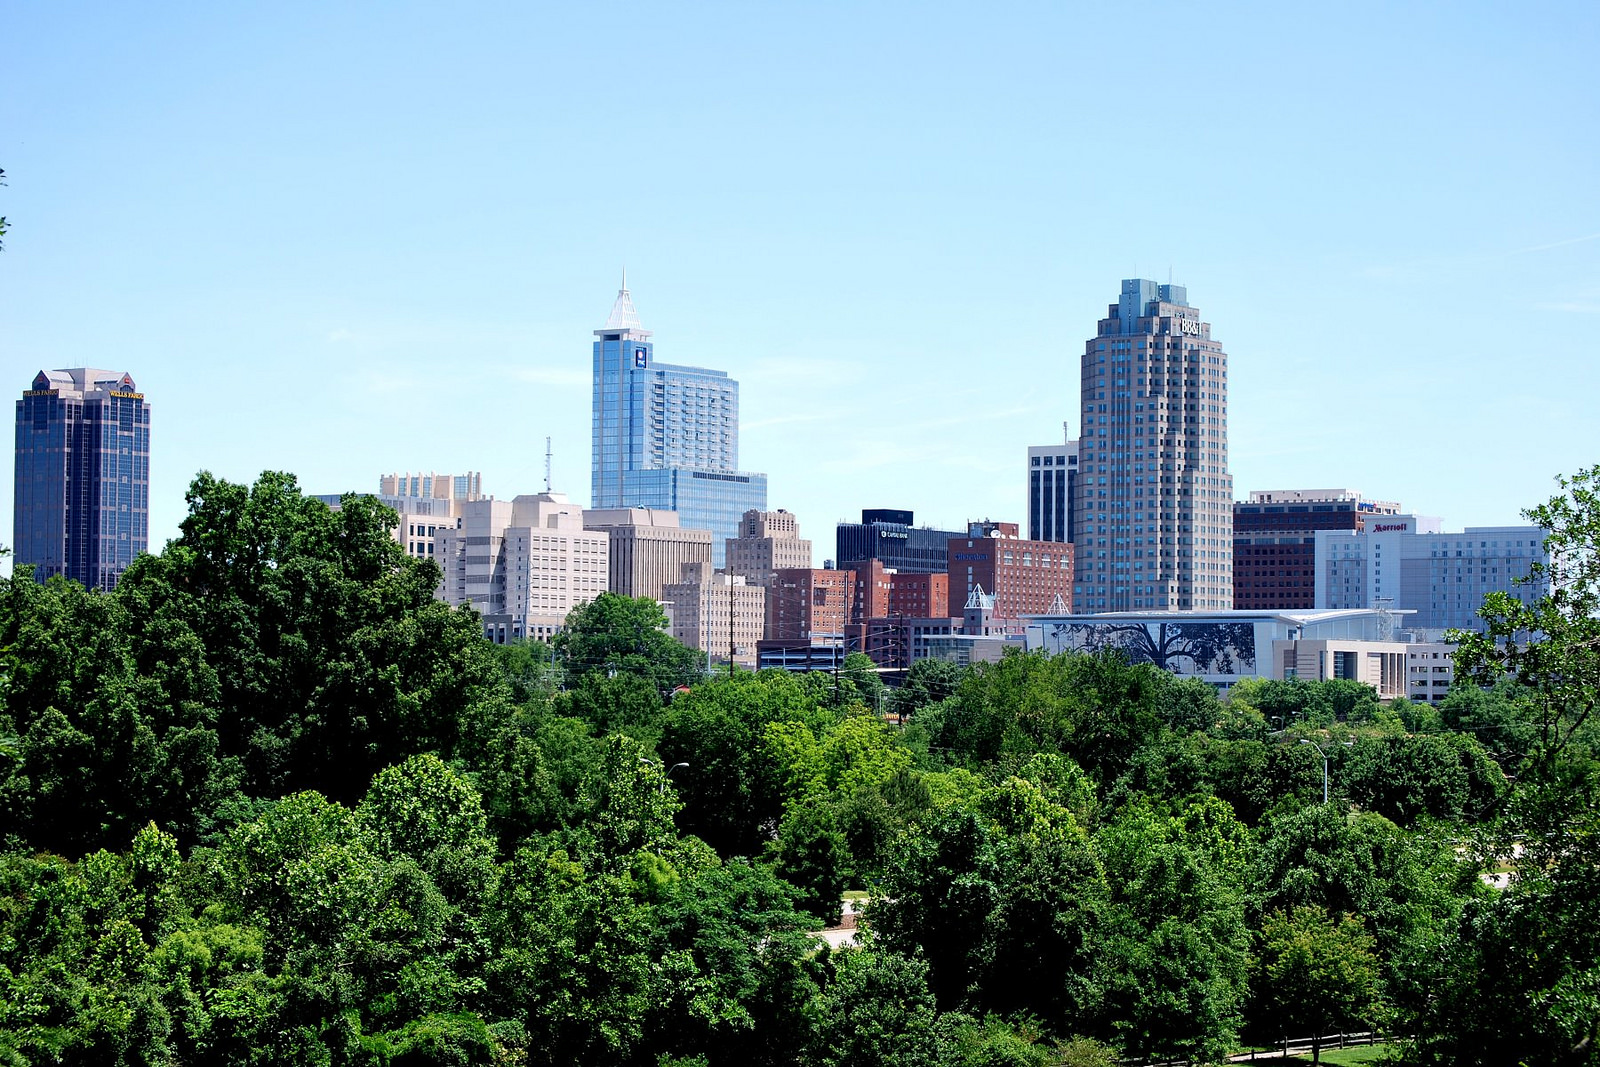 city of Raleigh image